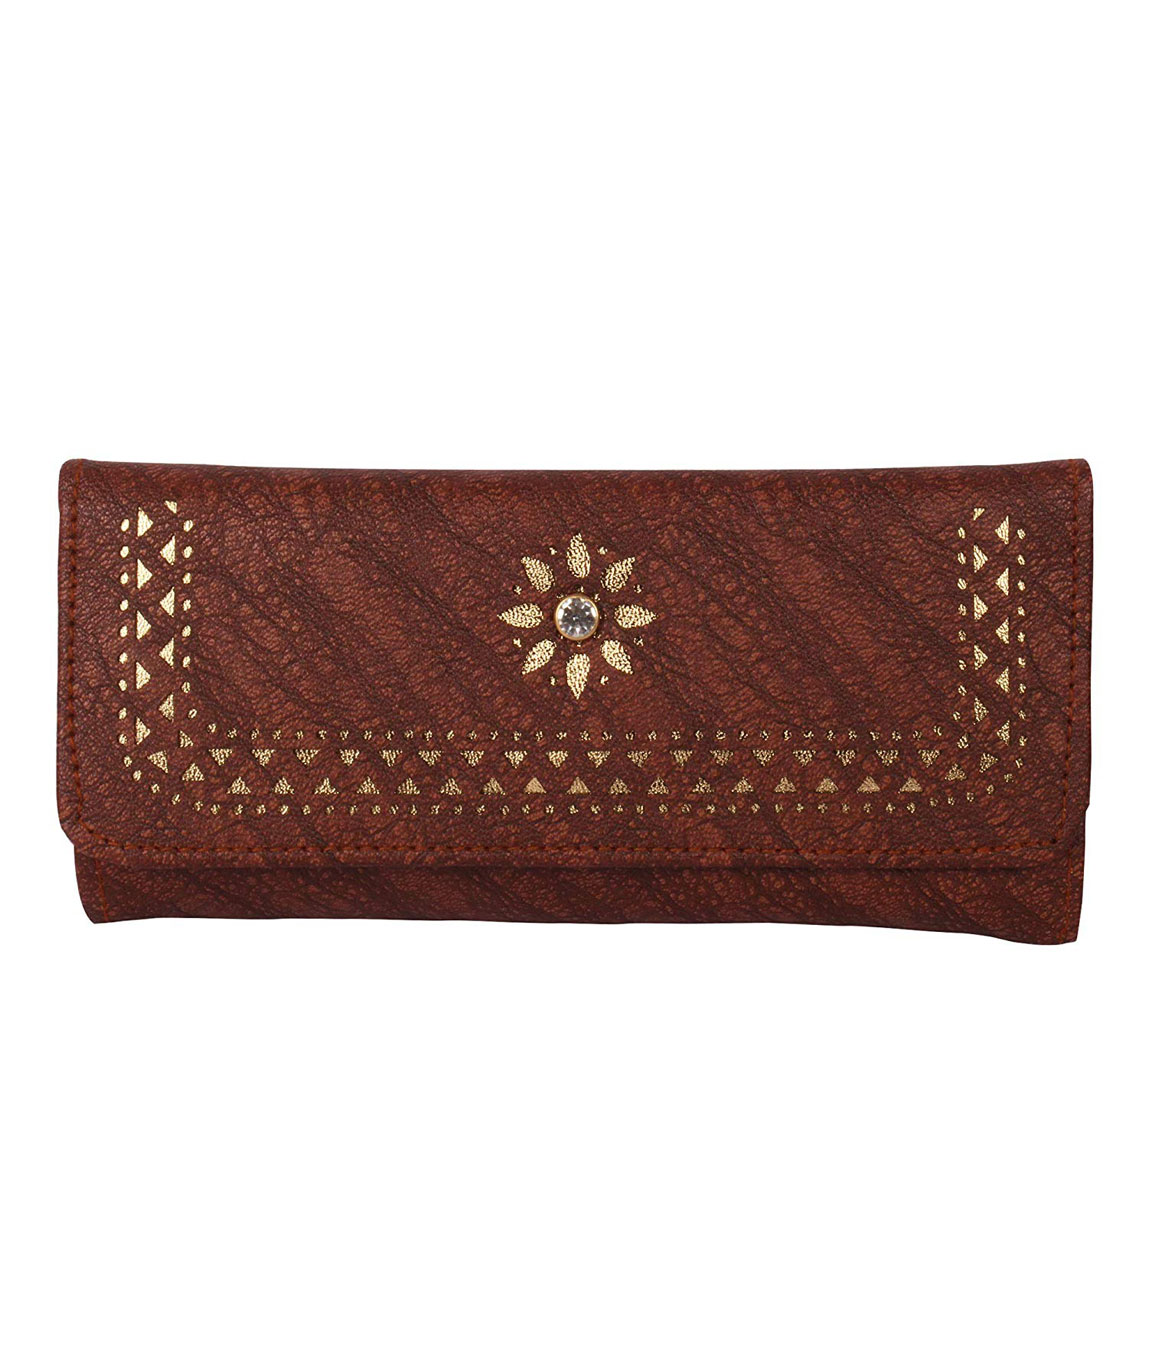 Women Girls Leather Wallets Lady Fashion Long Purse Handbag Women`s Clutches/Genuine Leather Wallet/Purse For Women and Girls(brown)